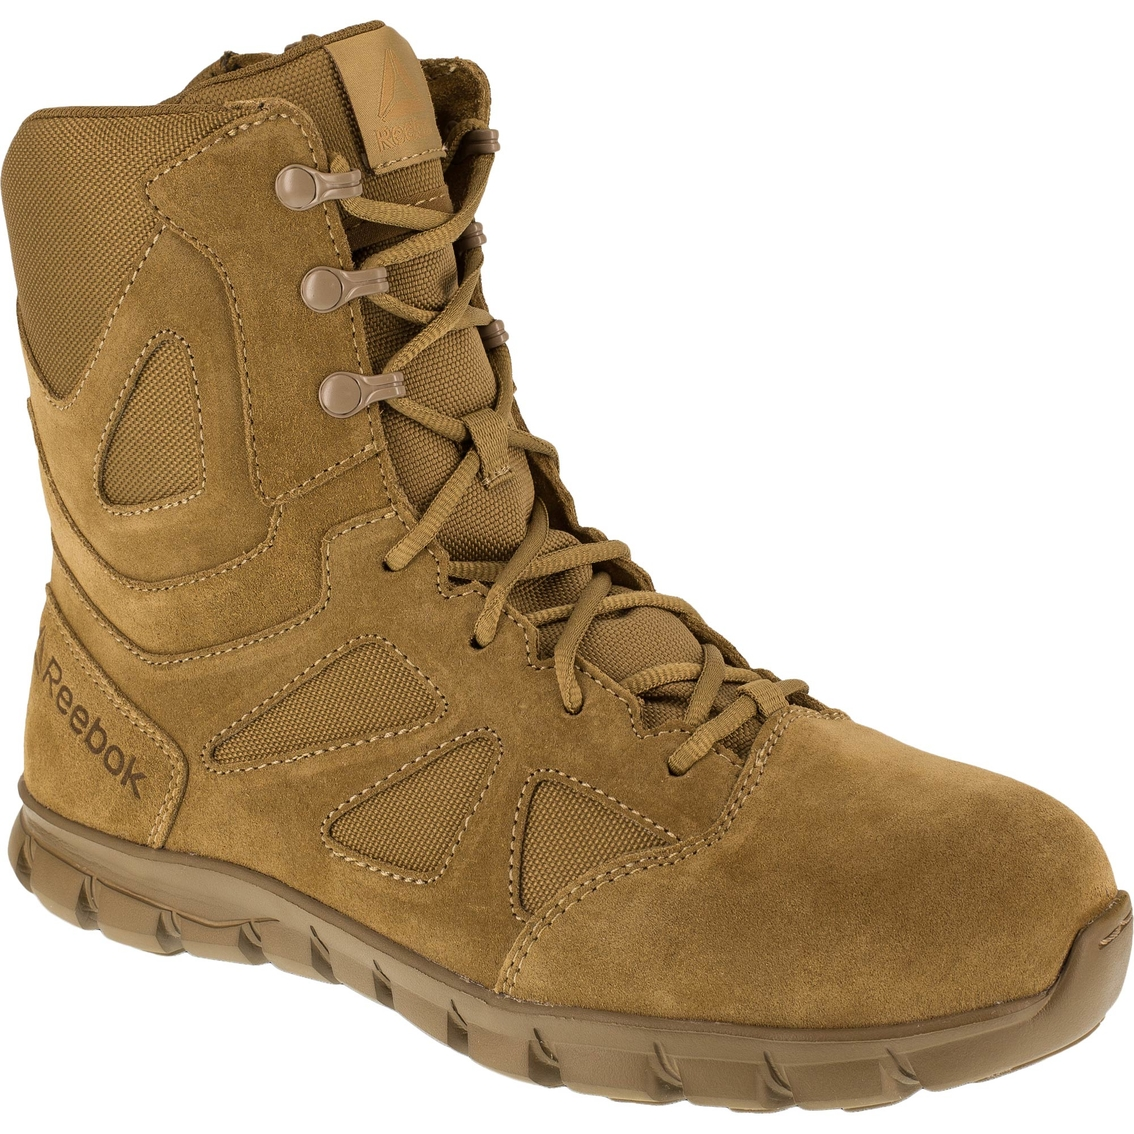 9fb18f8eb36 Reebok Men's Duty Rb8809 Sublite Cushion Tactical 8 In. Boots ...